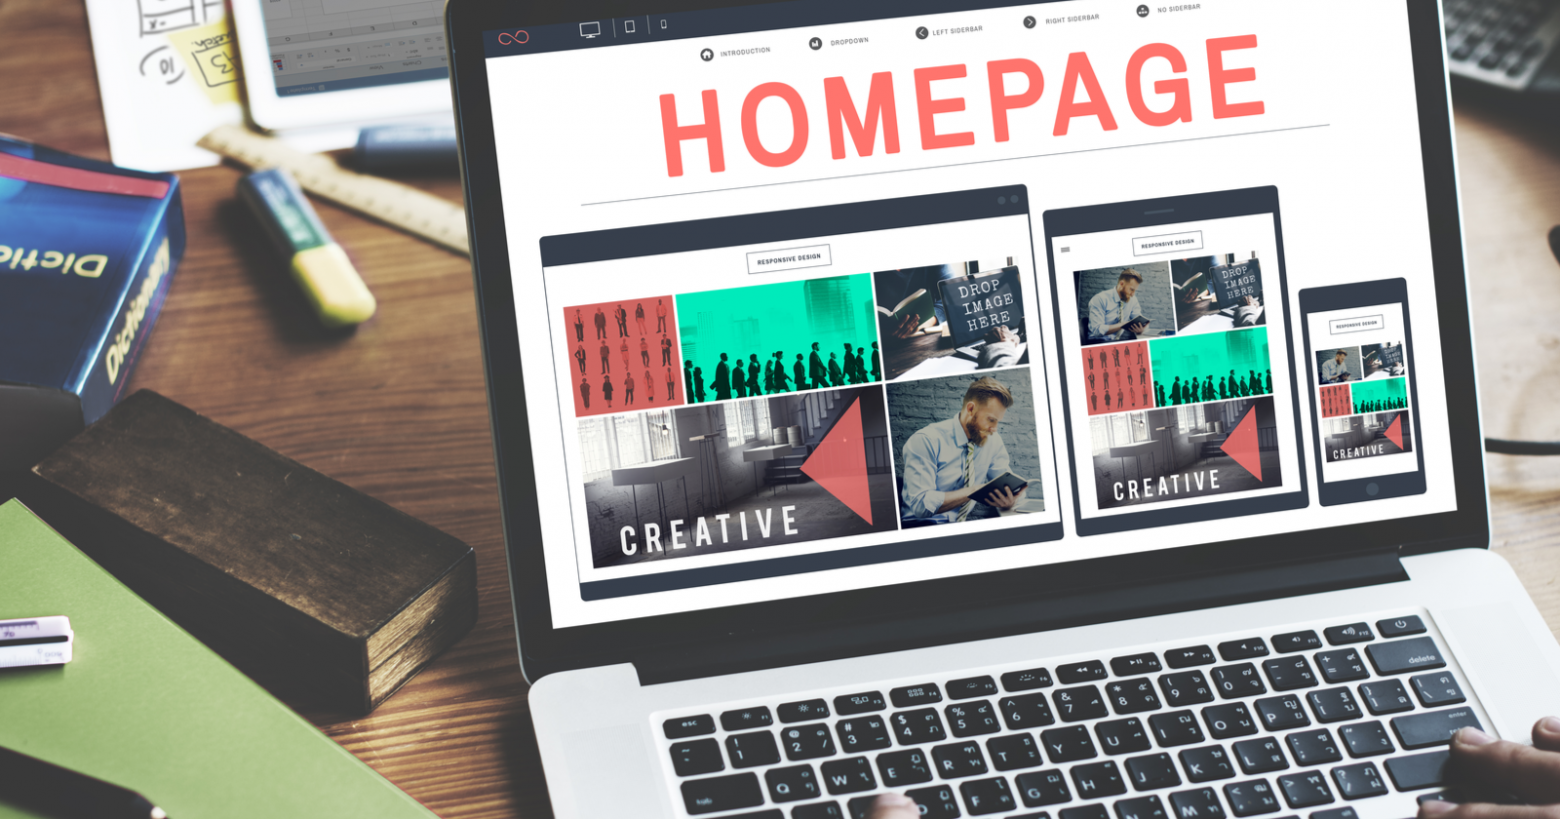 How to Design Webpage: Step Guide from Website Designers